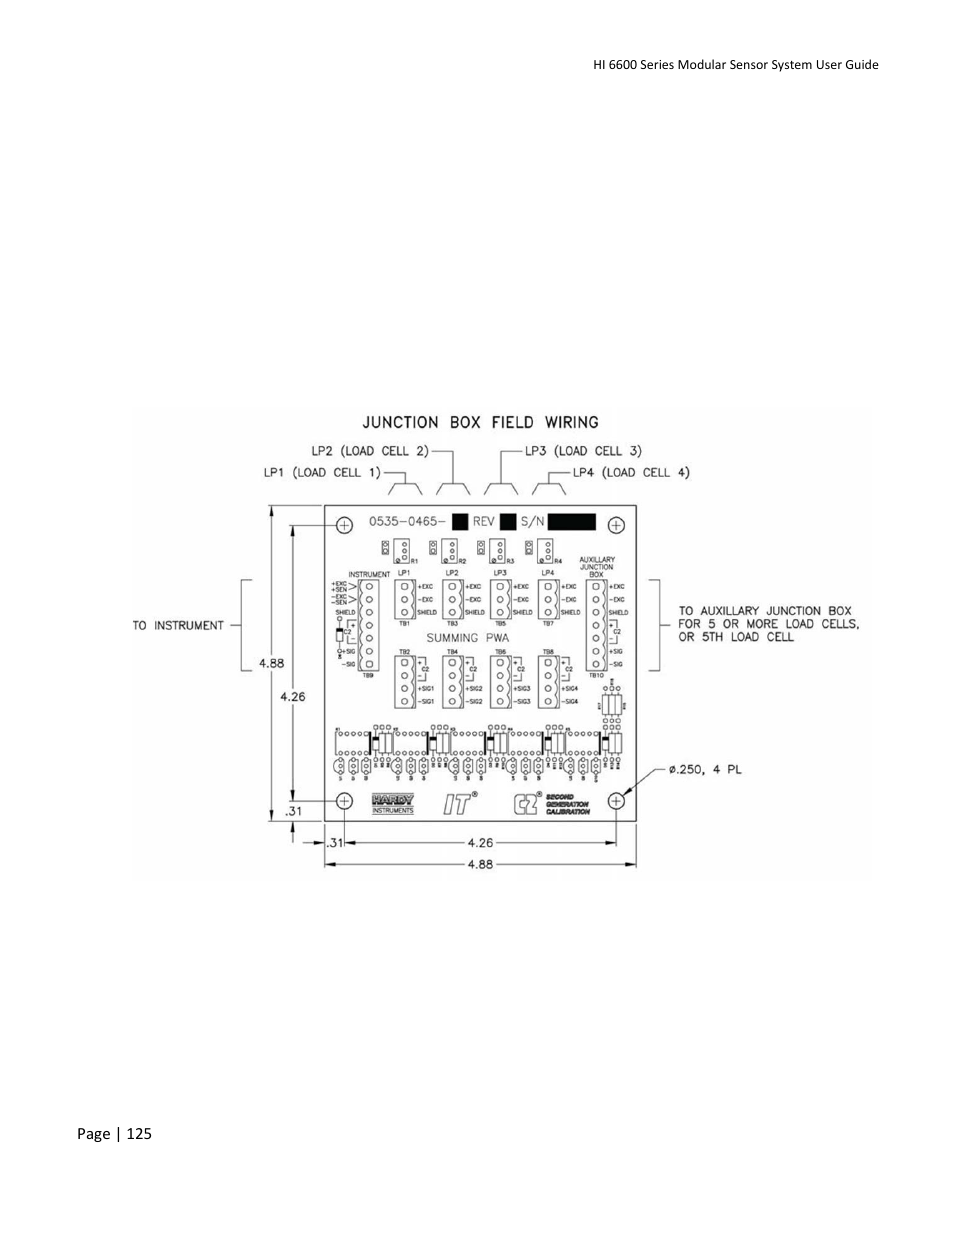 medium resolution of appendix e wiring junction boxes or summing cards hardy hi 6600 series modular sensor system user manual page 125 127